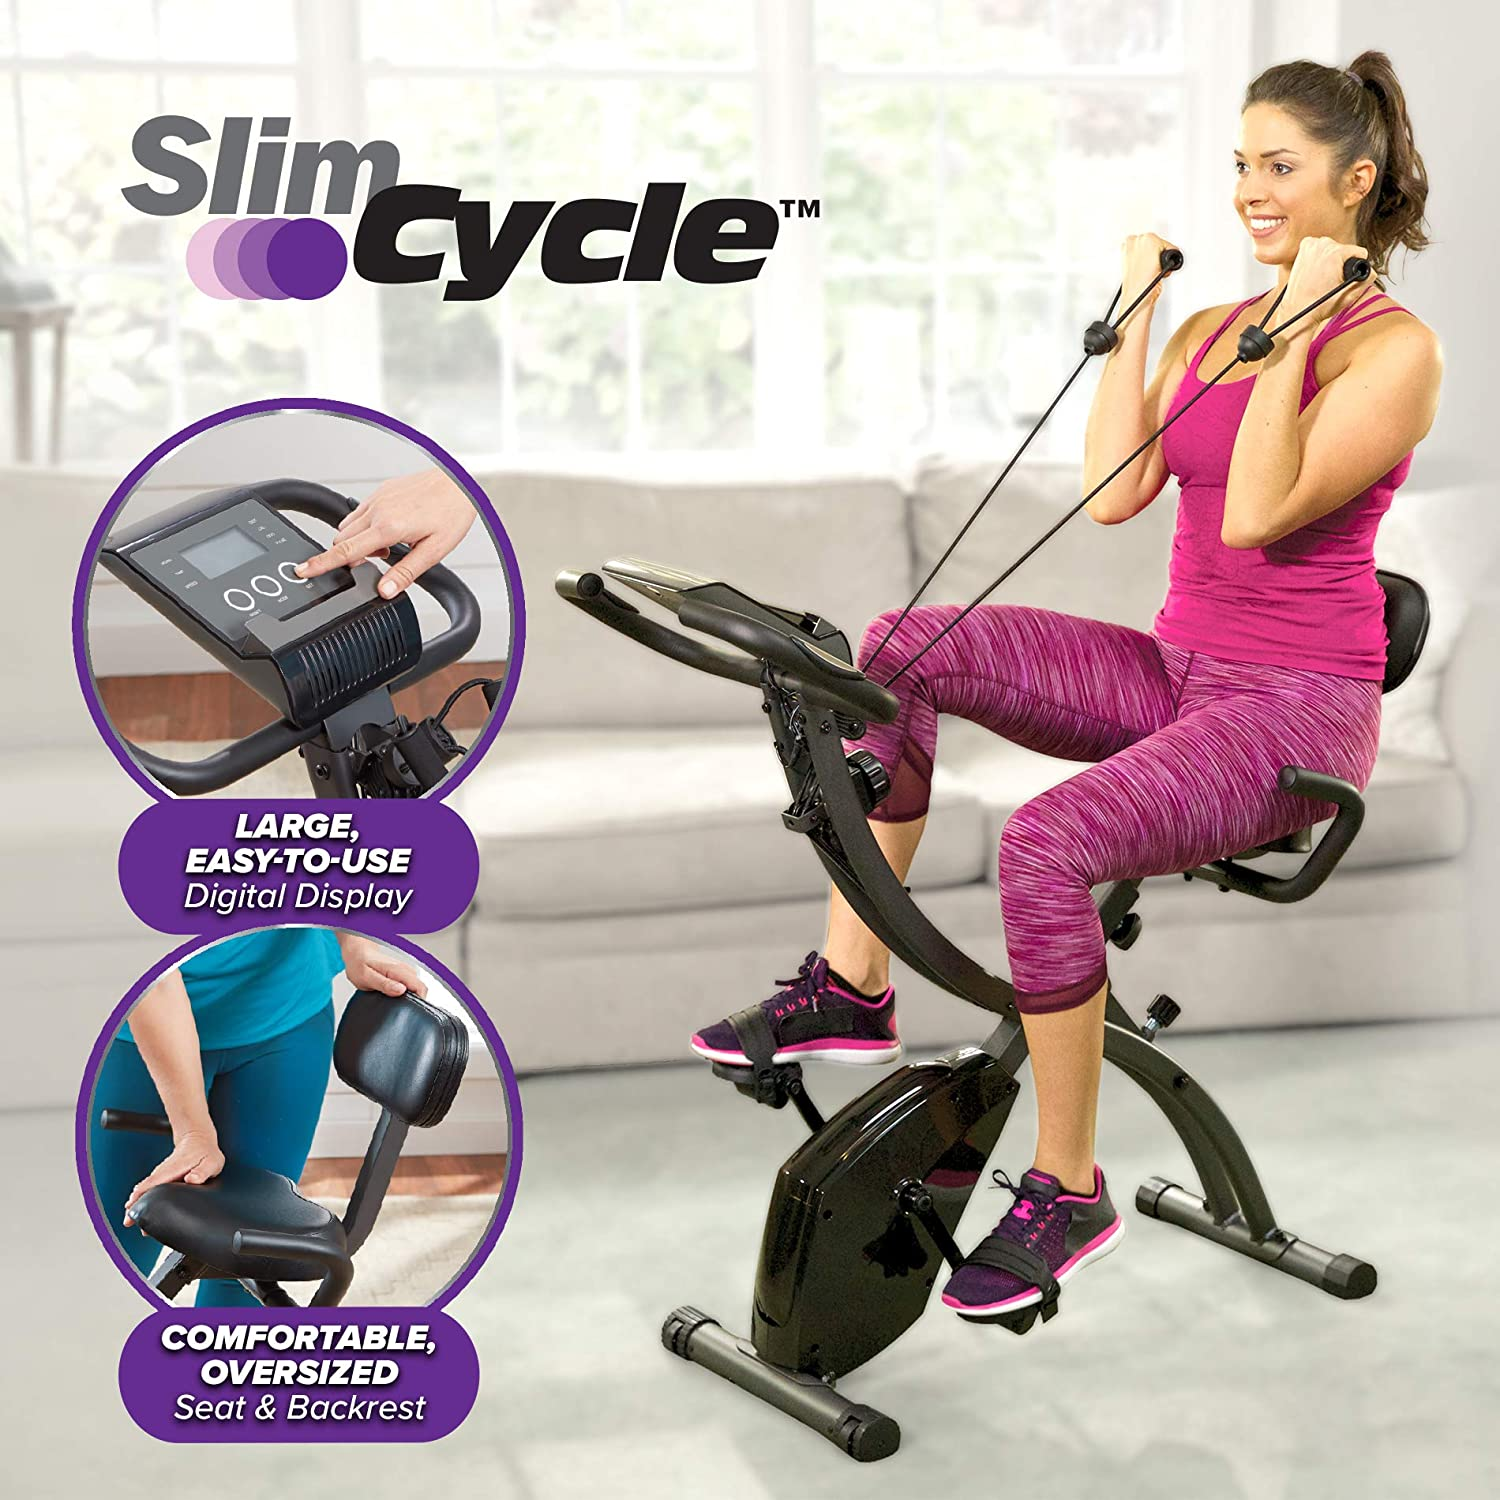 Amazon.com : Slim Cycle 2-in-1 Stationary Bike We LOVE this stationary bike on our boat. Perfect for keeping active while at anchor. It folds for easy storage and moving around, and has two positions – plus resistance bands.